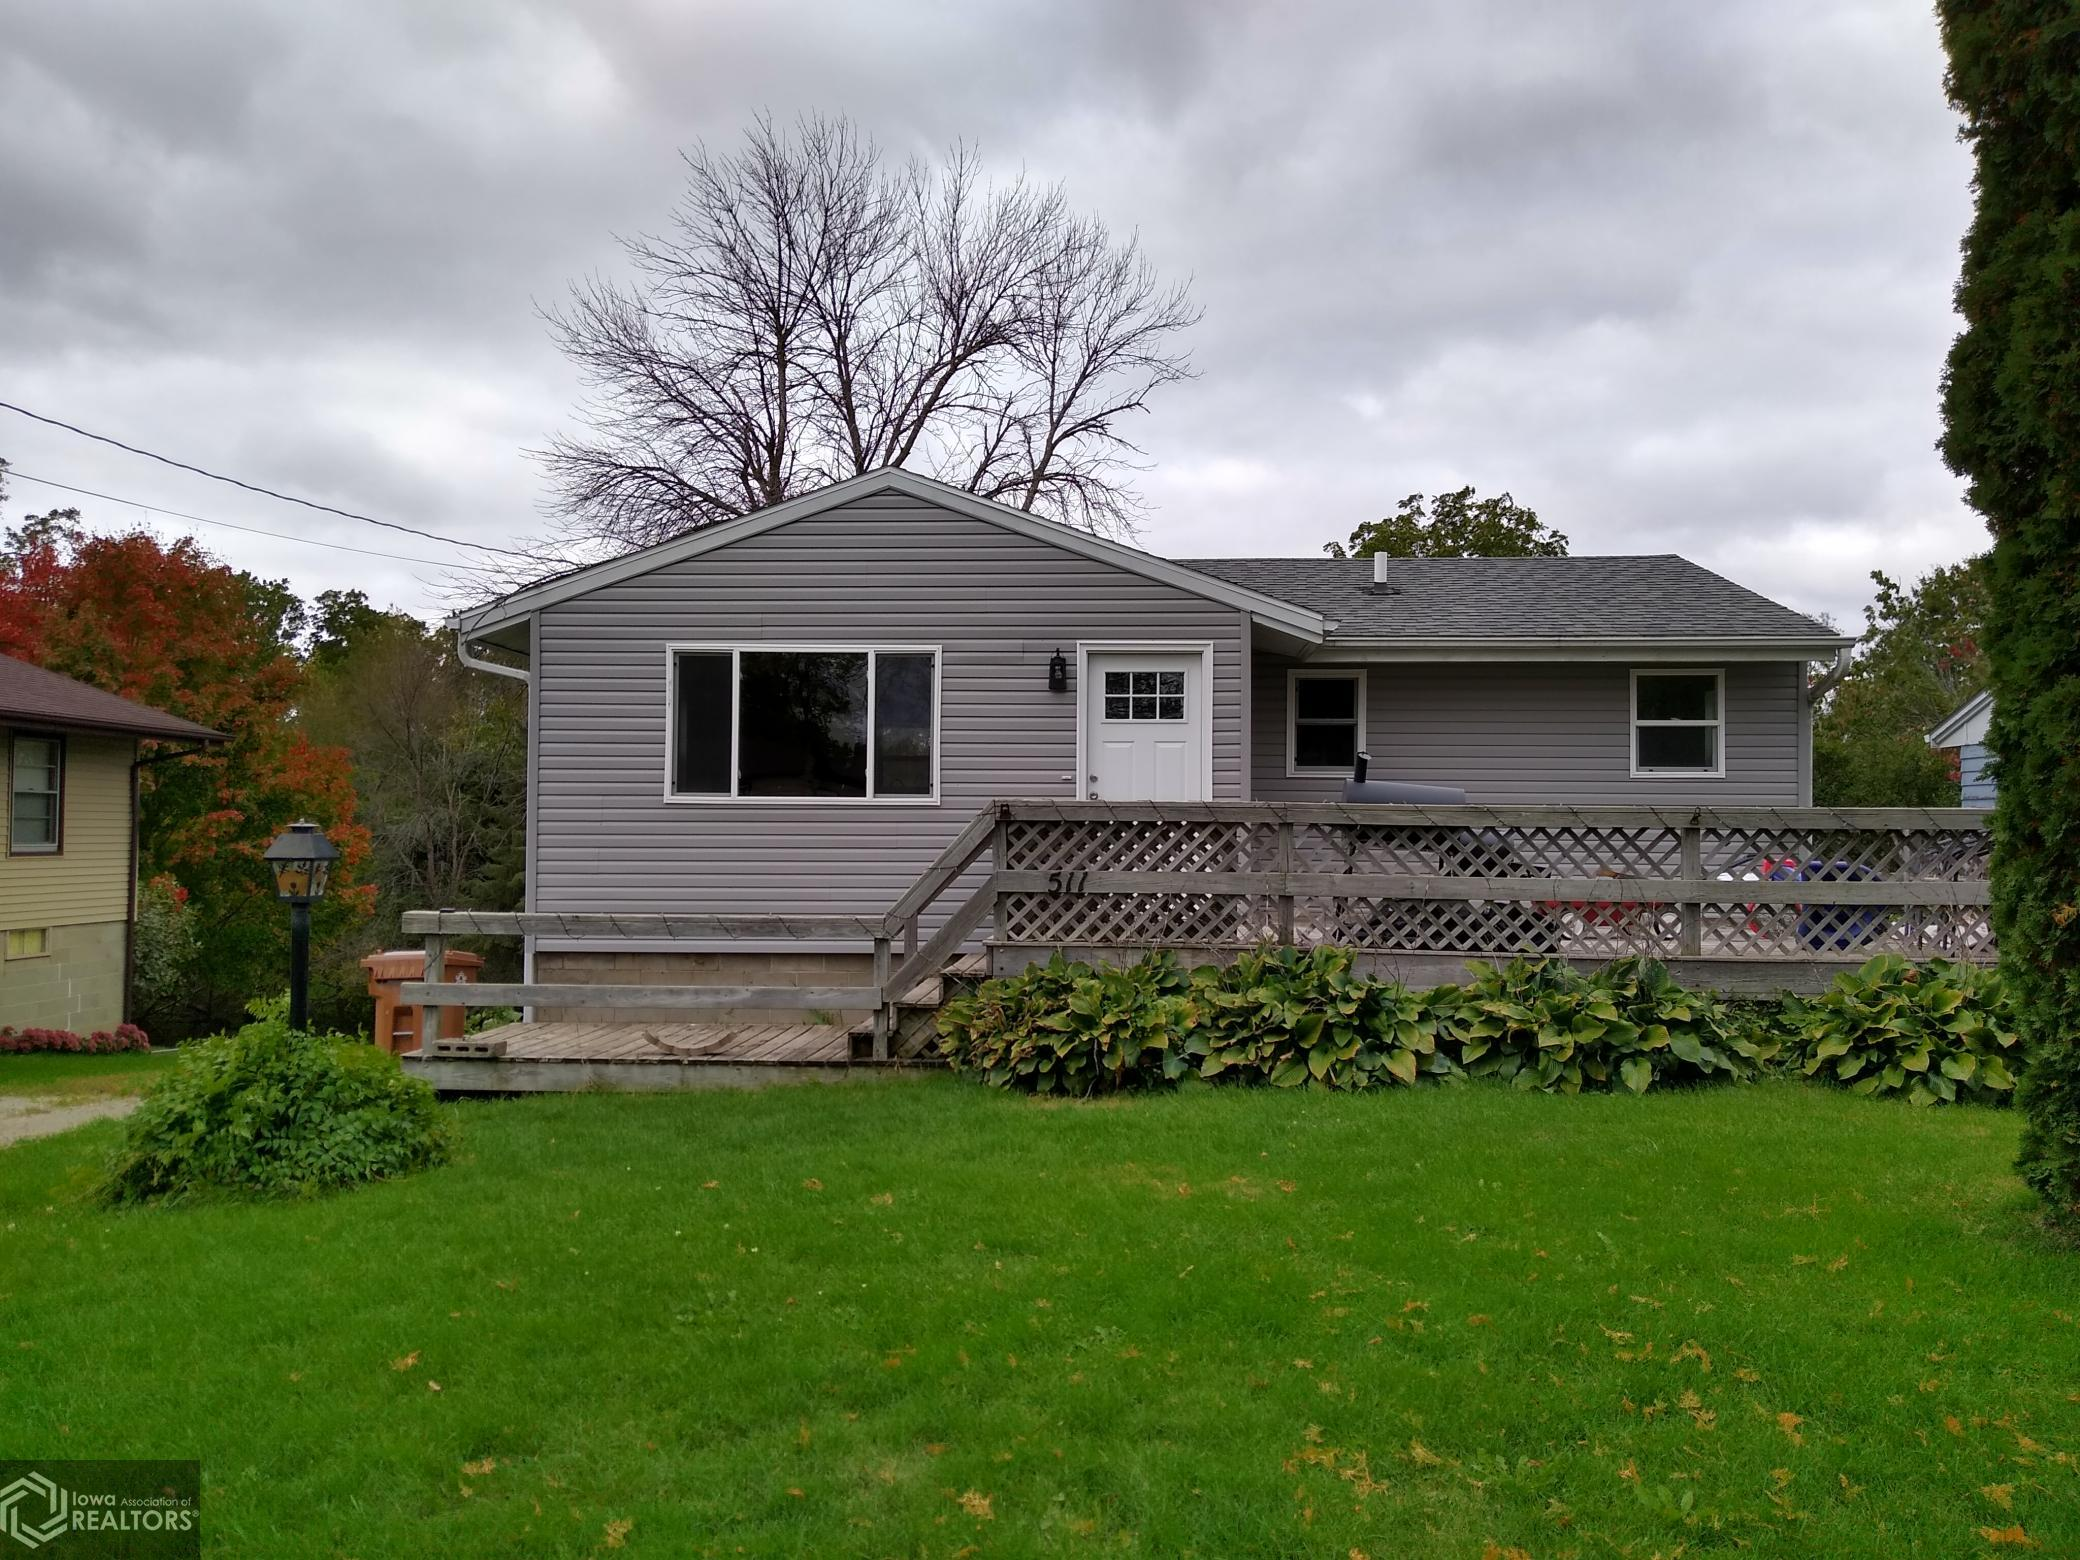 511 Center, Grinnell, Iowa 50112-0304, 3 Bedrooms Bedrooms, ,1 BathroomBathrooms,Single Family,For Sale,Center,5667715